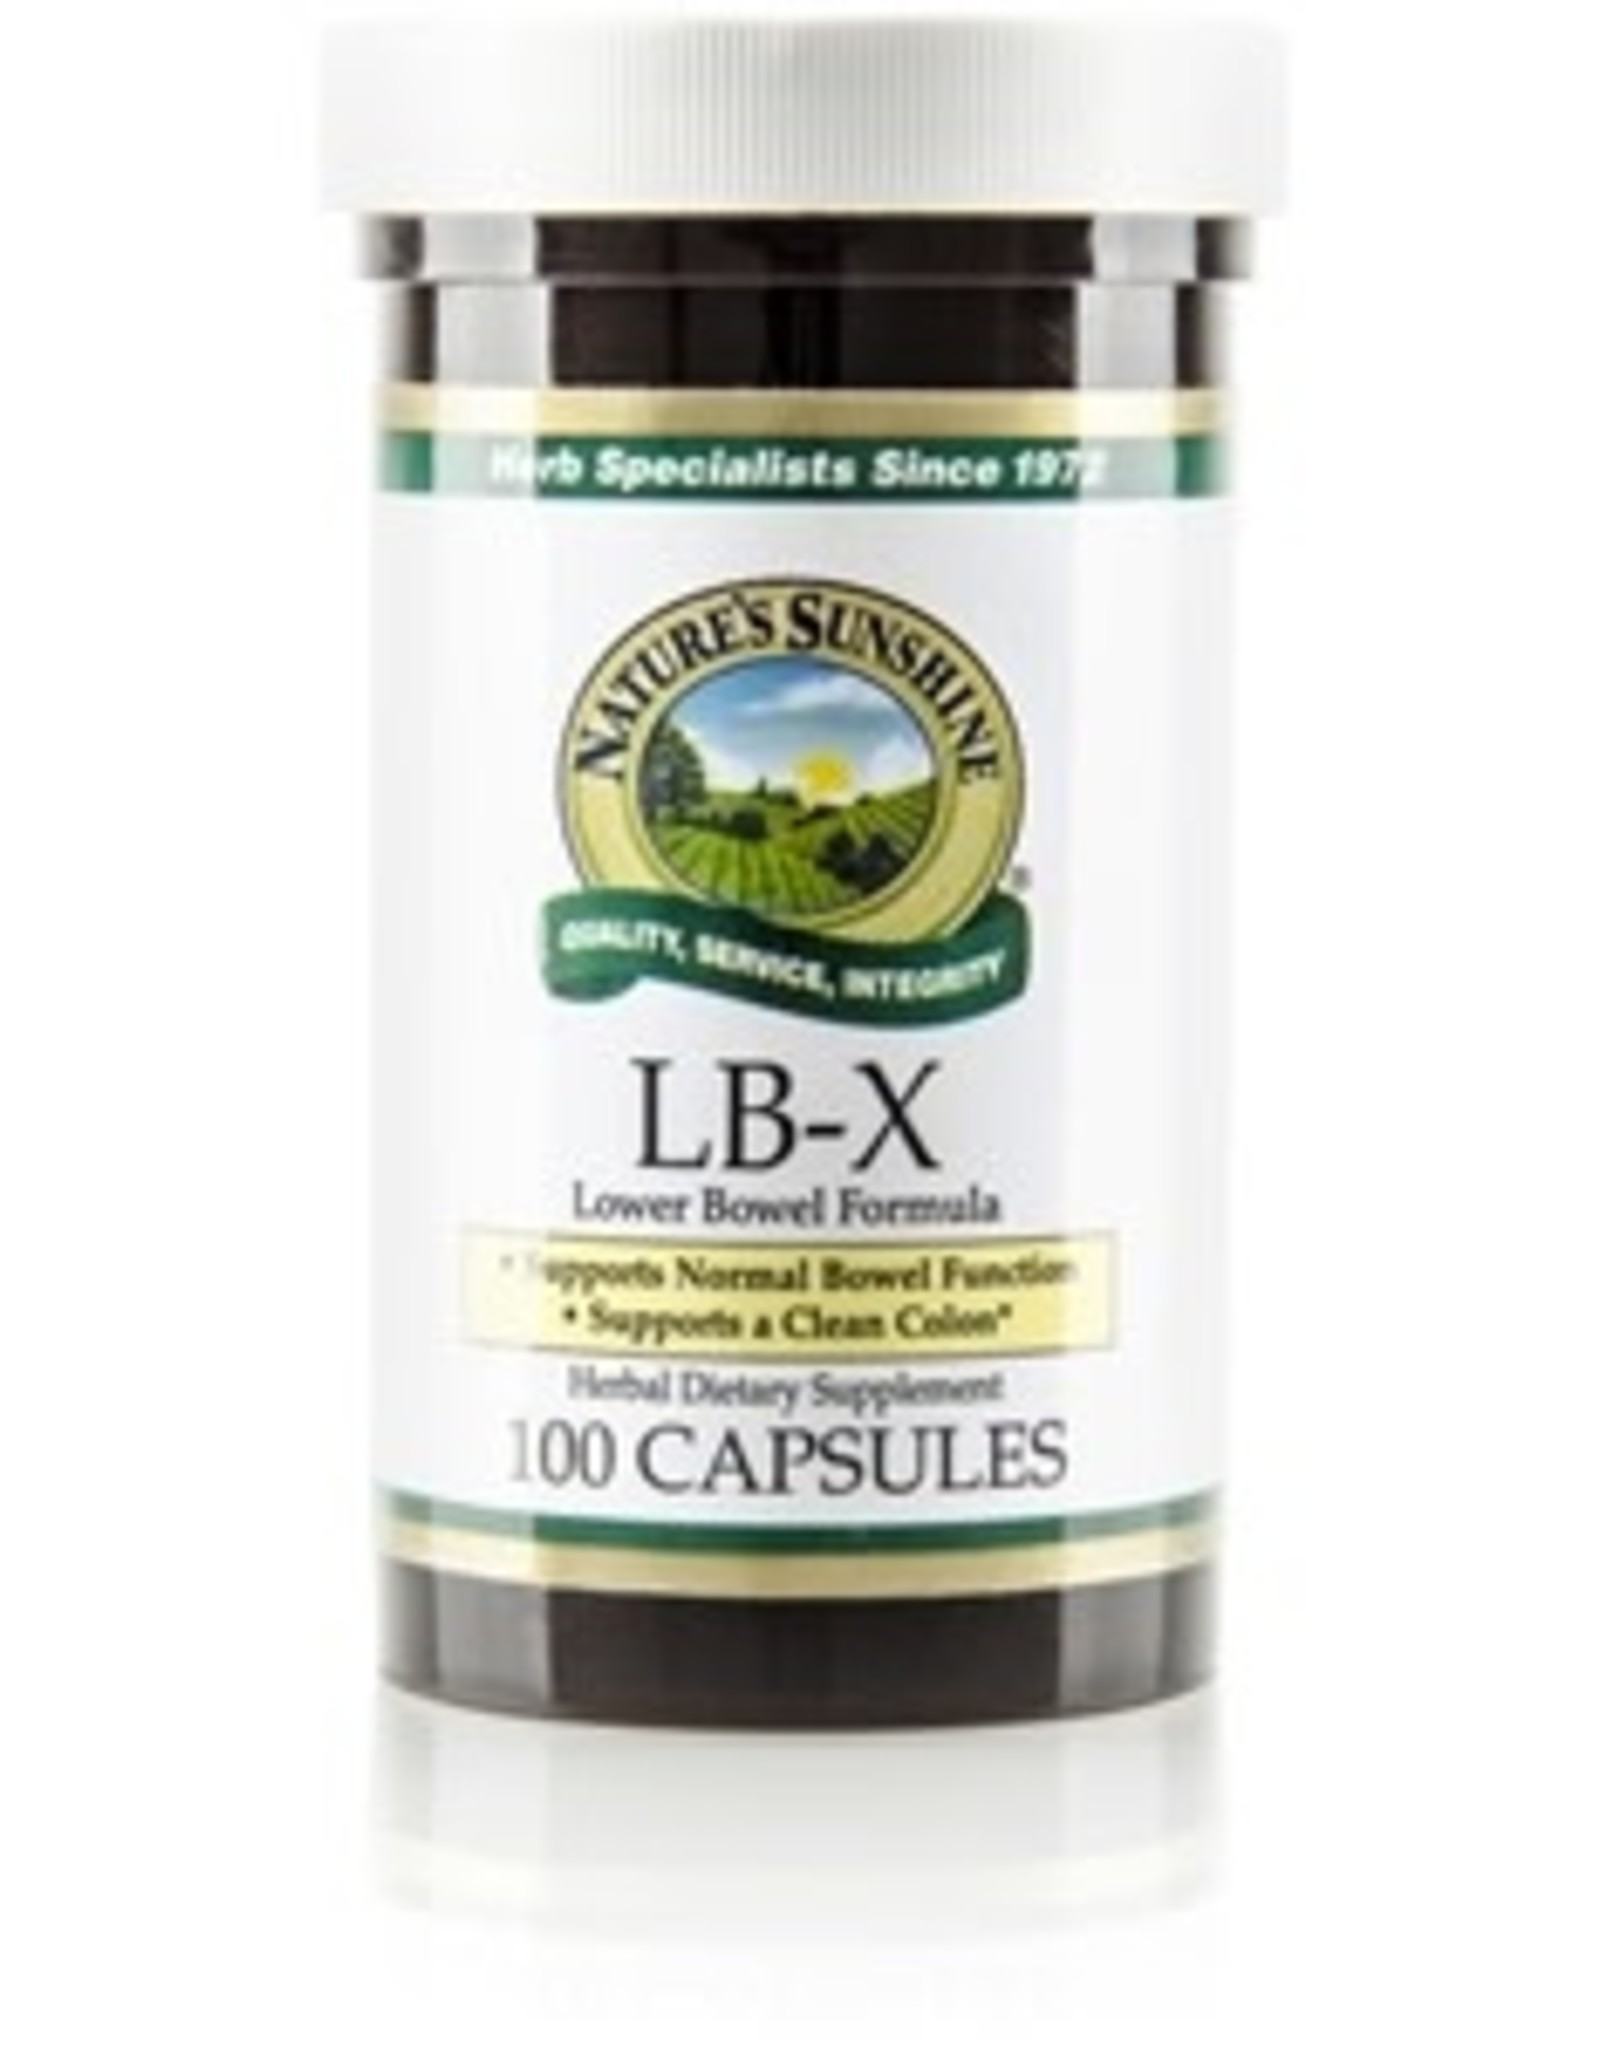 Nature's Sunshine Nature's Sunshine - Suppléments, Lb-X (100cap)